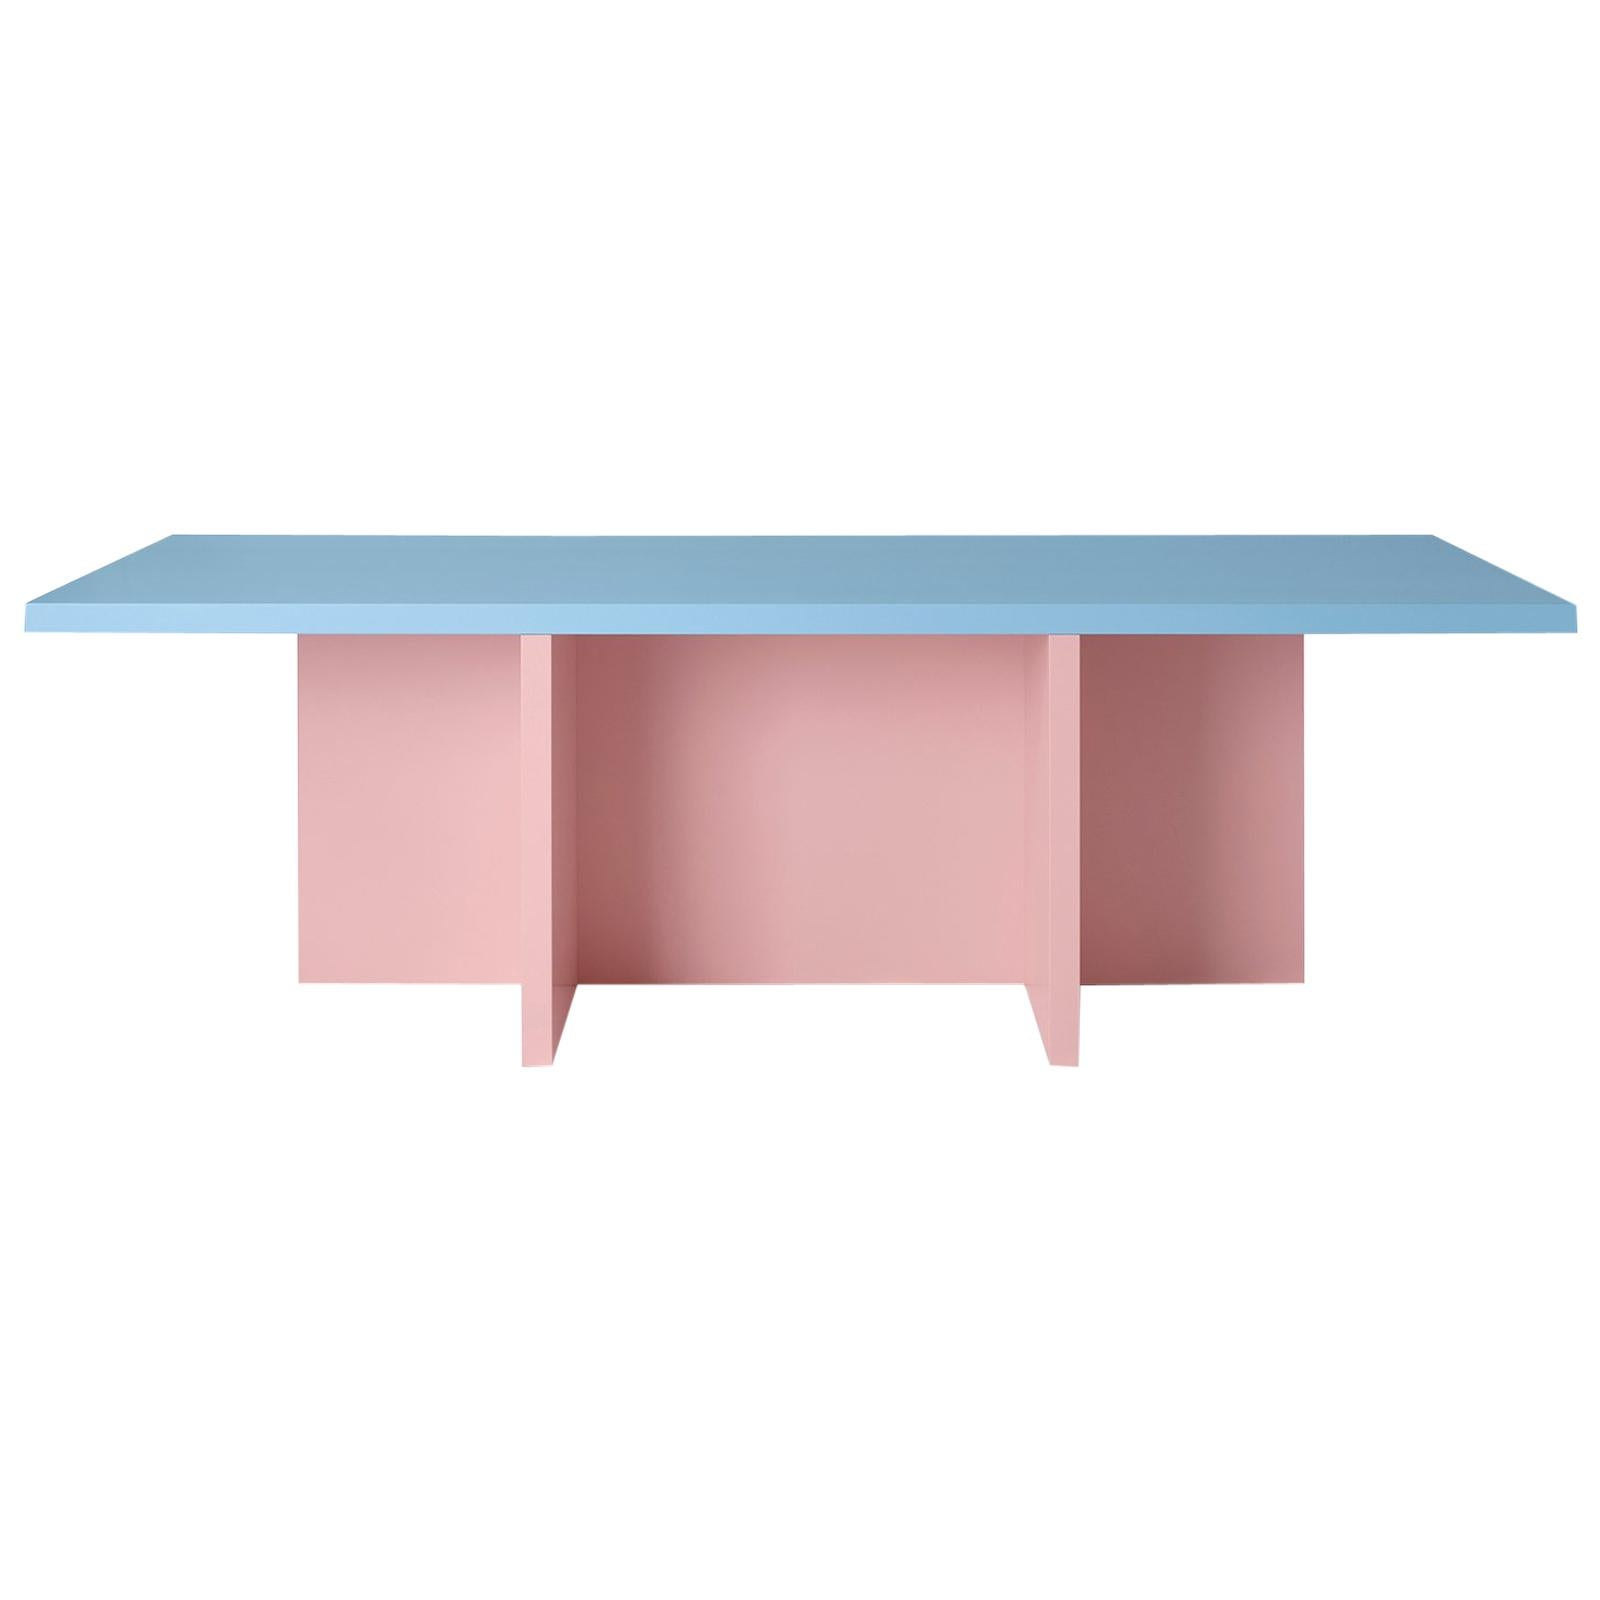 Color-Blocked Pink Lacquered MDF Rectangular Dining Table by Studio Bannach